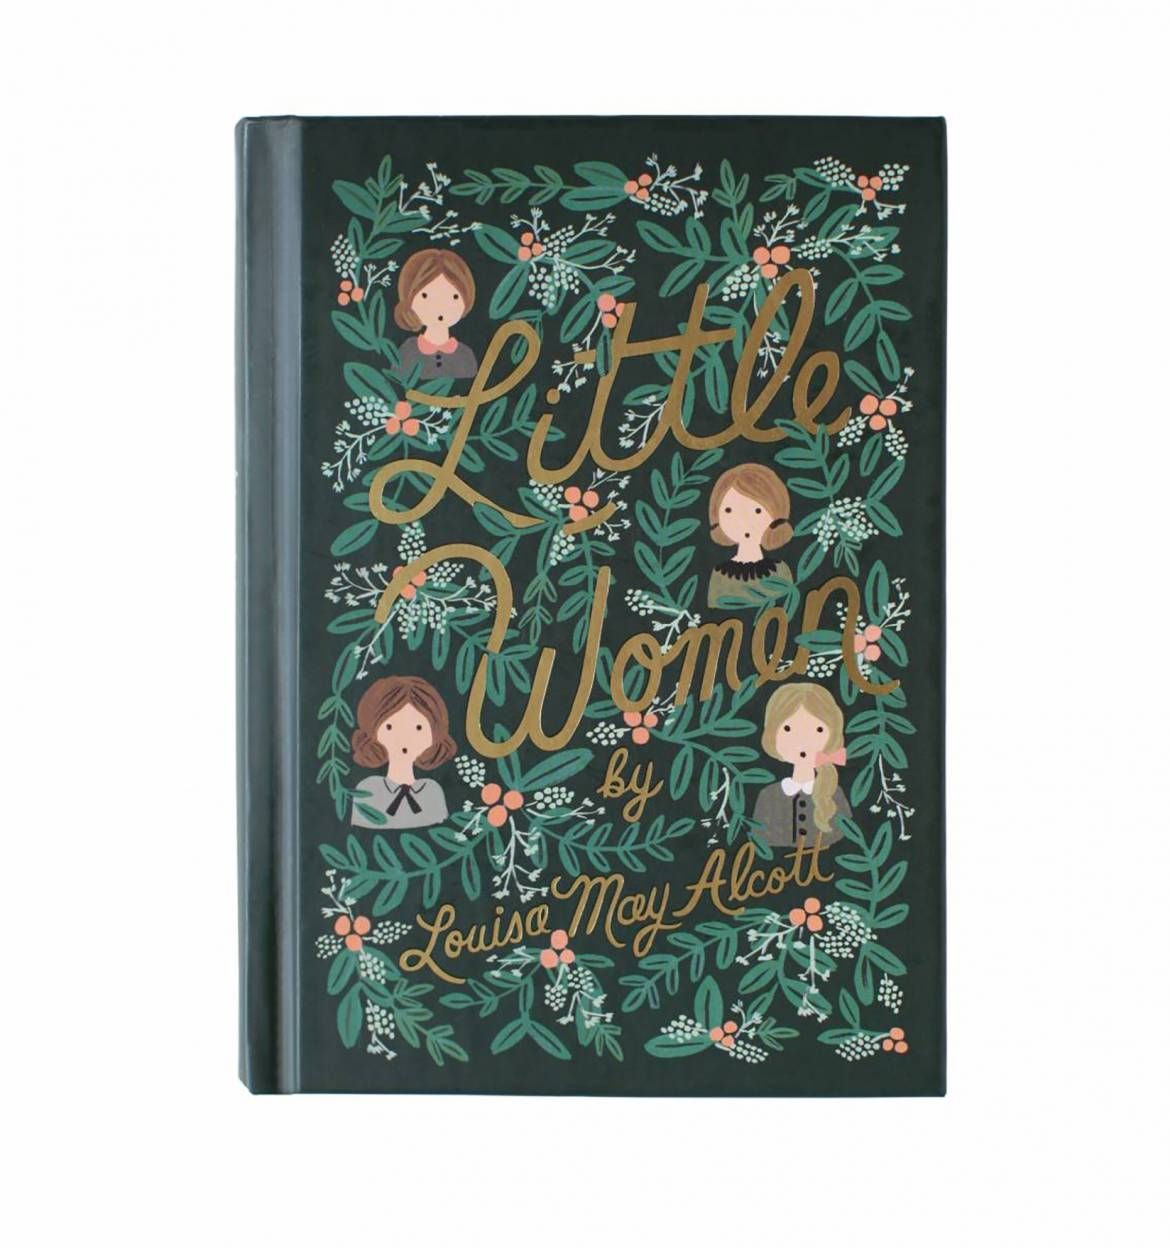 Rifle Paper Co. - Little Women - Hardcover Book Published By Puffin In Bloom With Matching Bookmark